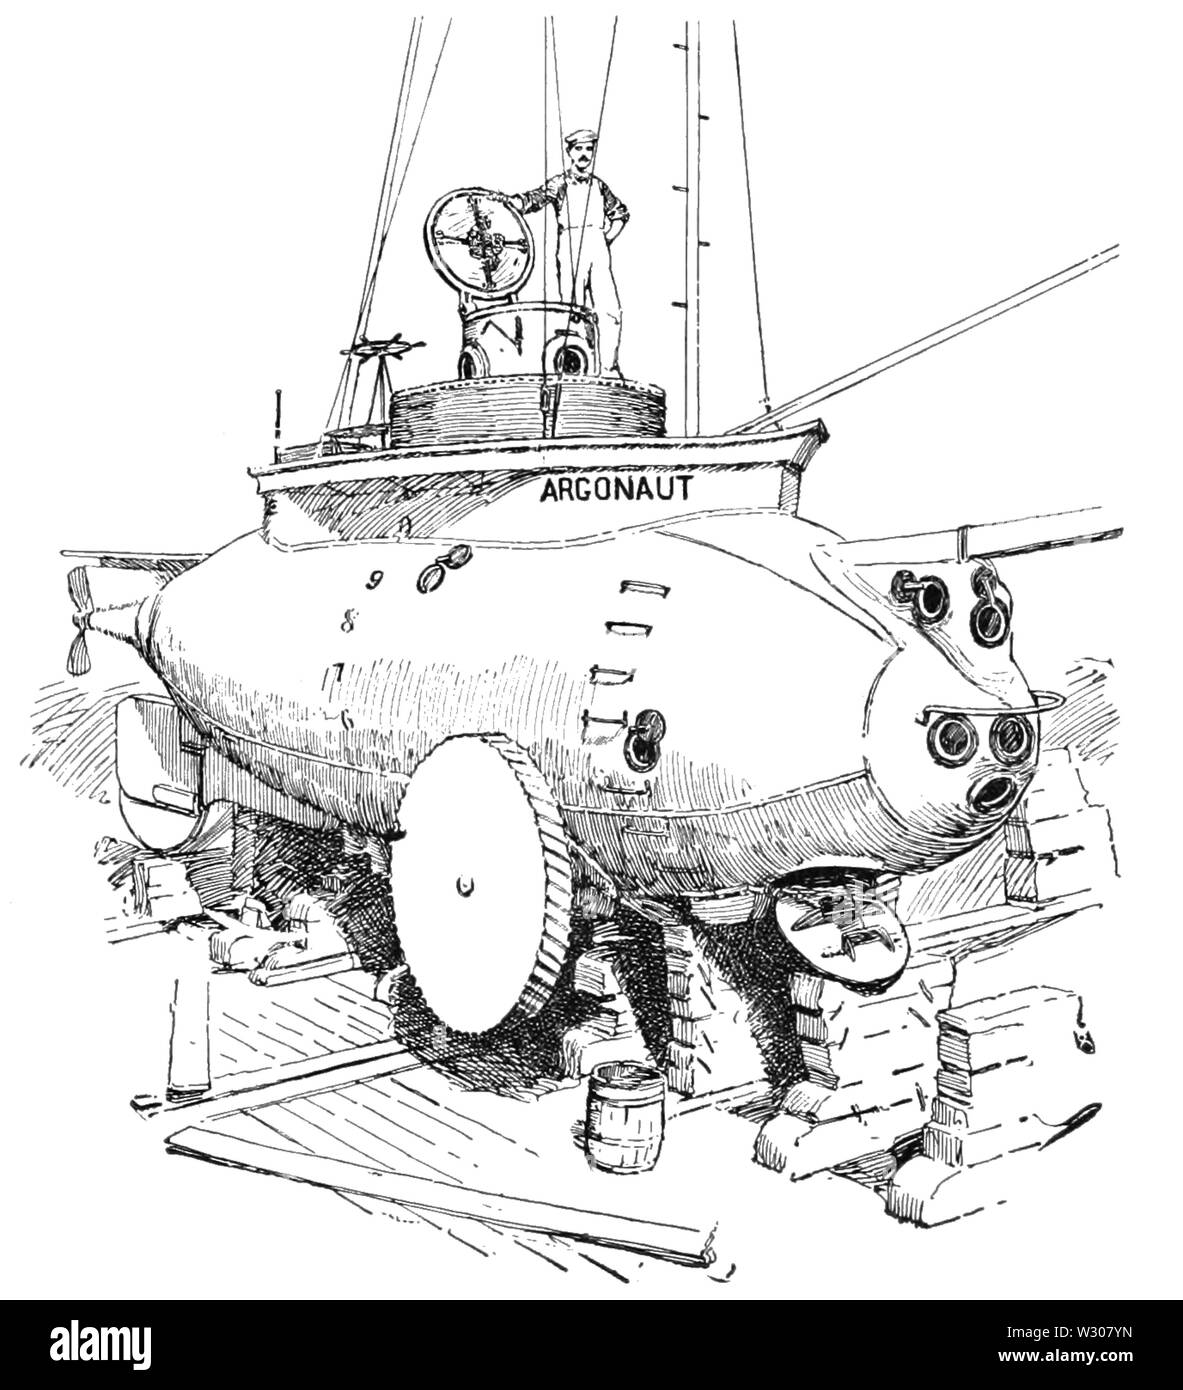 PSM V58 D171 The argonaut submarine in dry dock - Stock Image